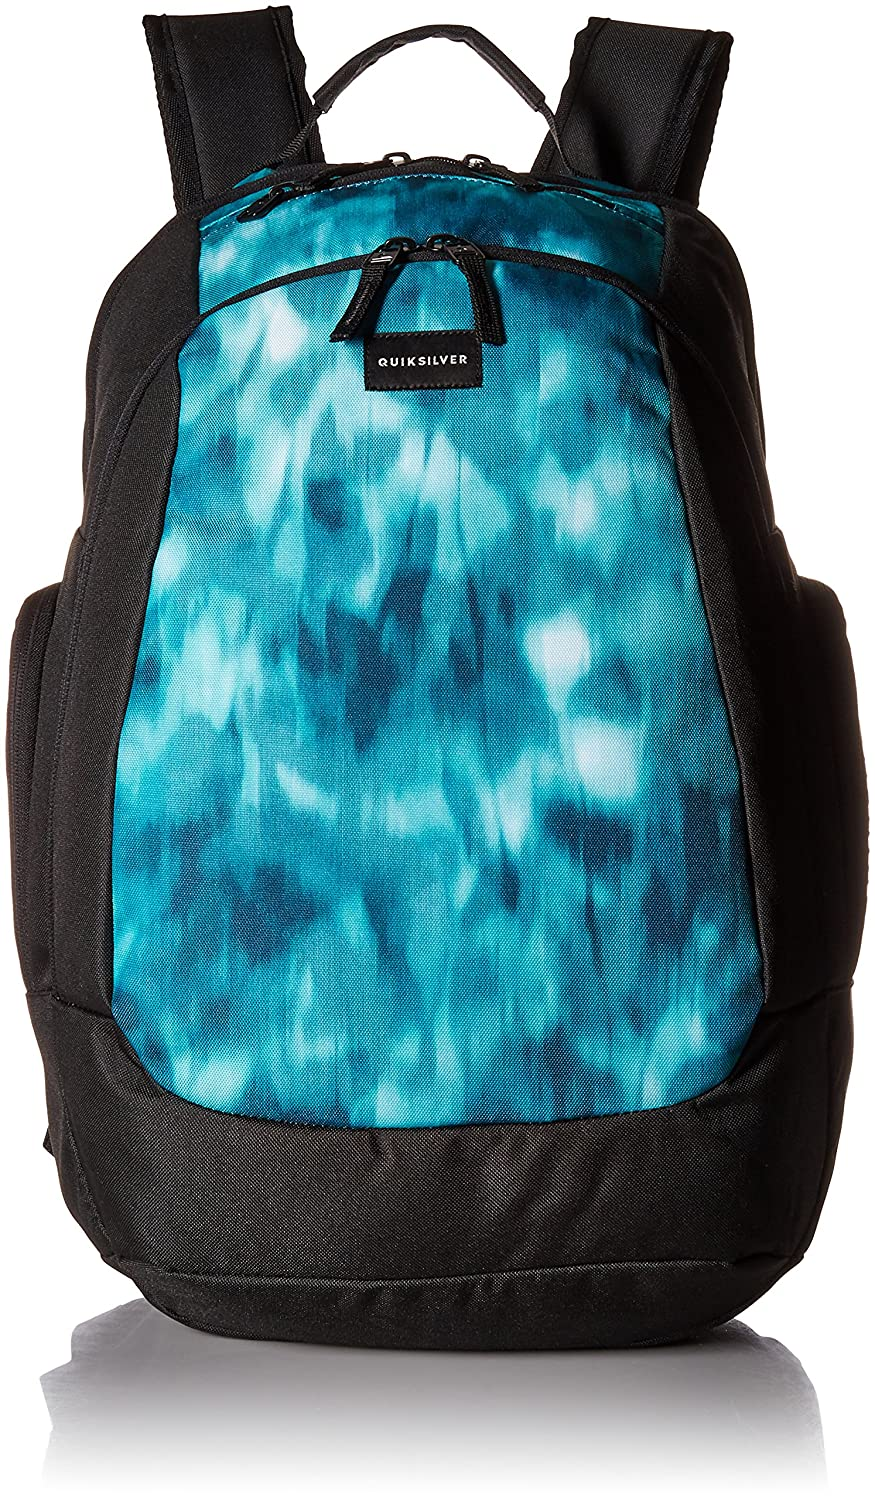 Quiksilver Unisex 1969 Special Backpack Black One Size EQYBP03470